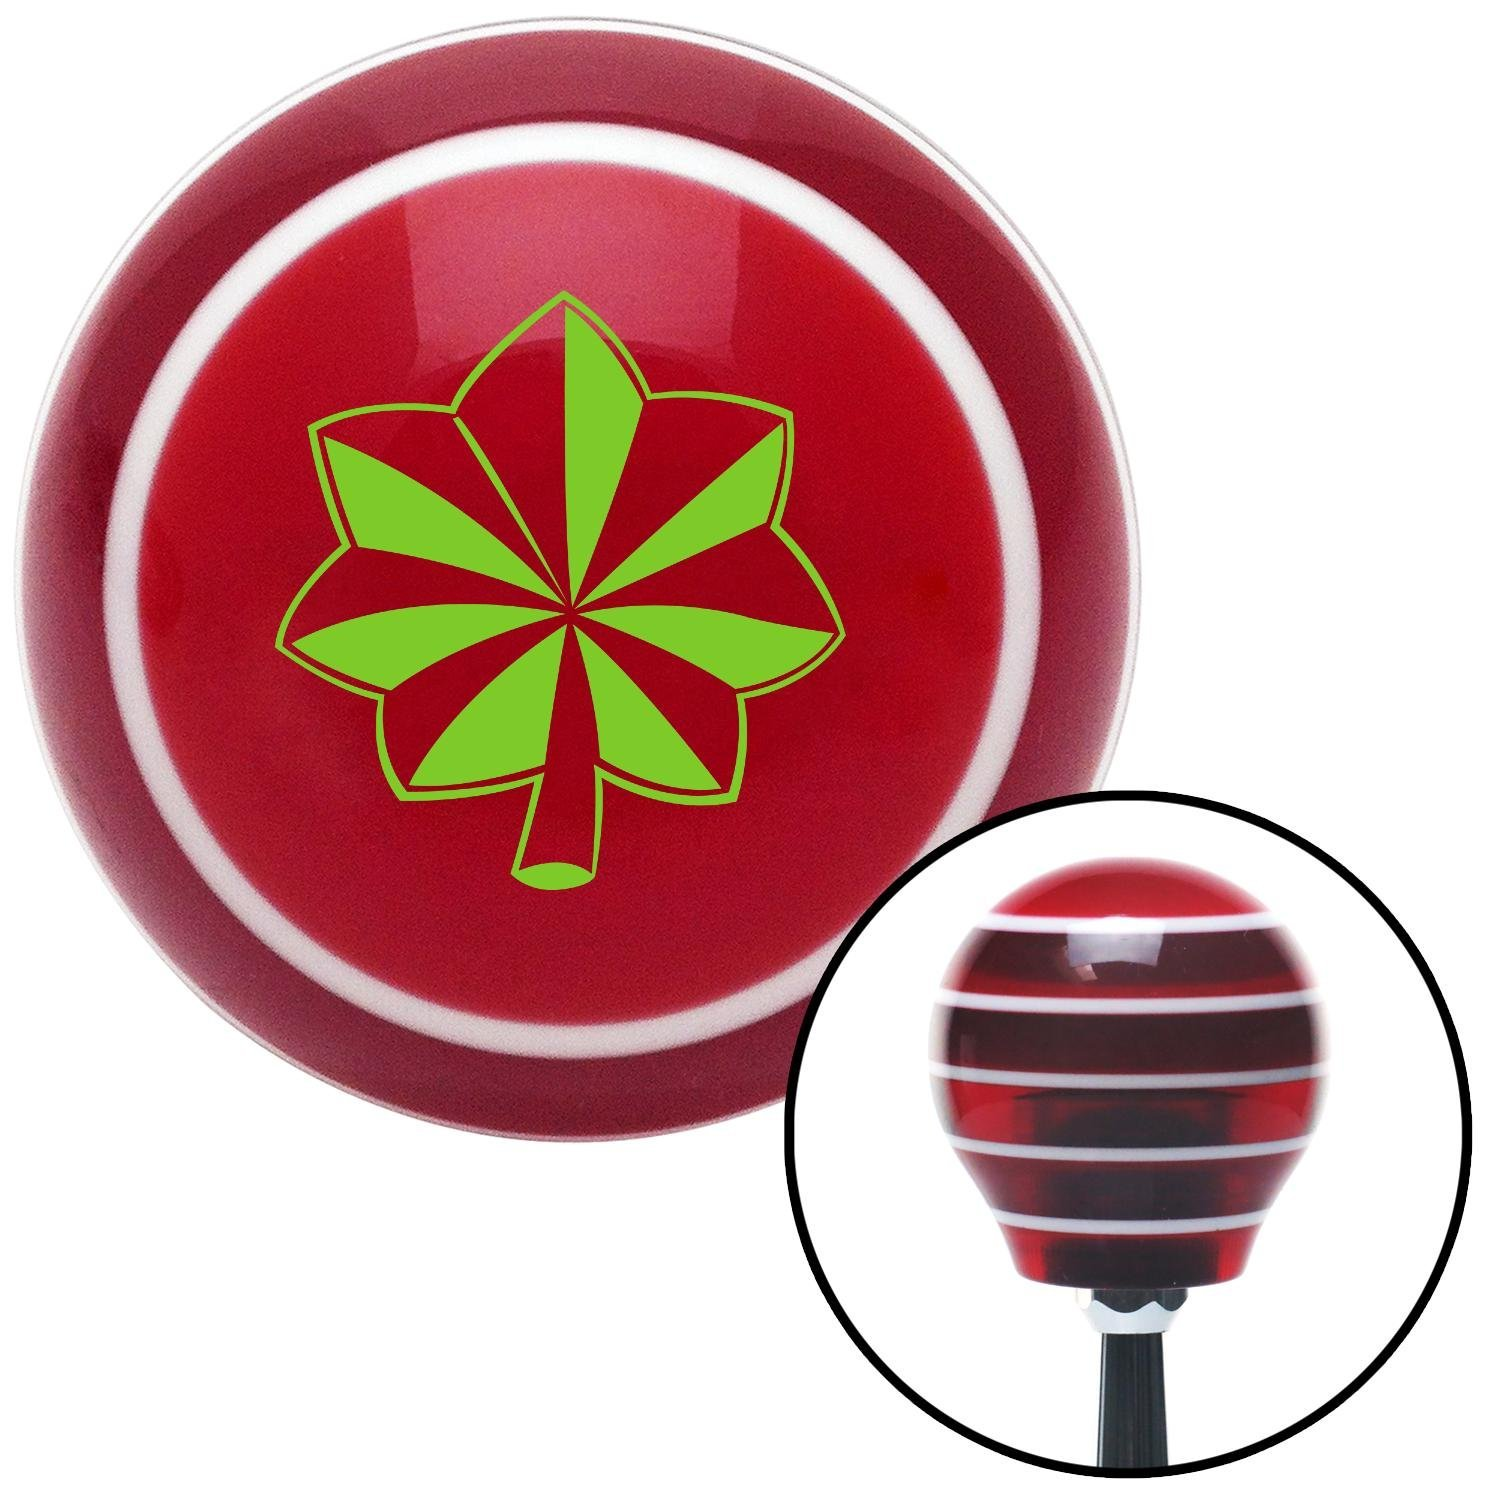 Green Commander American Shifter 115491 Red Stripe Shift Knob with M16 x 1.5 Insert